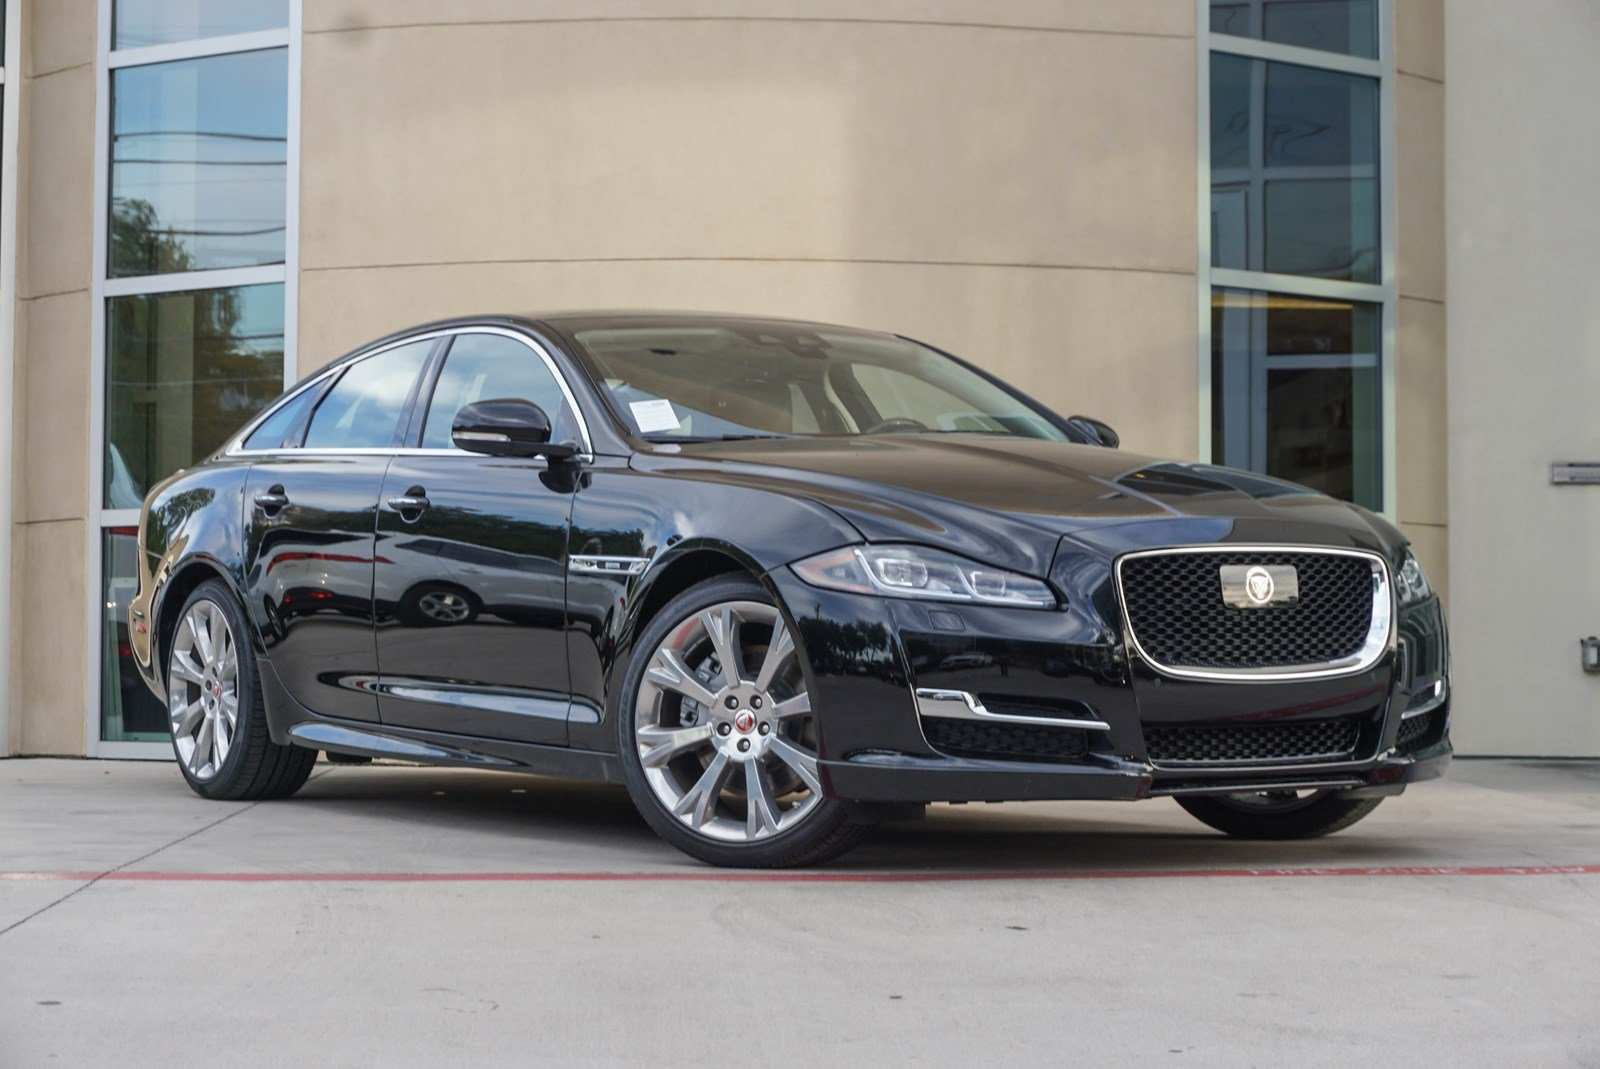 56 New 2019 Jaguar Sedan Price And Review